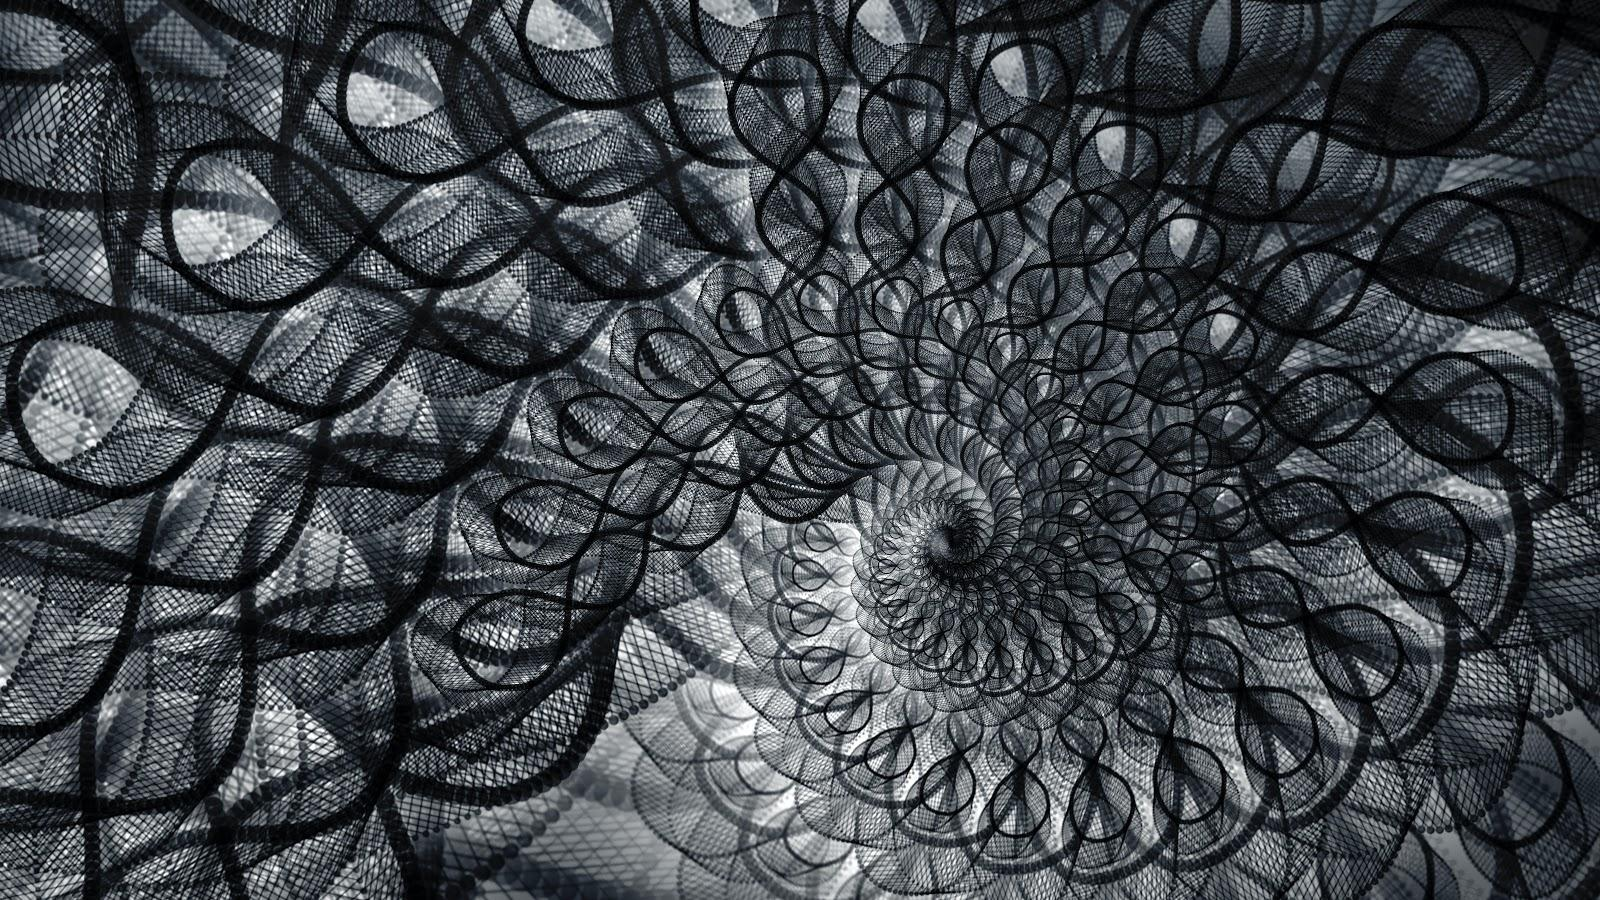 black and white abstract image